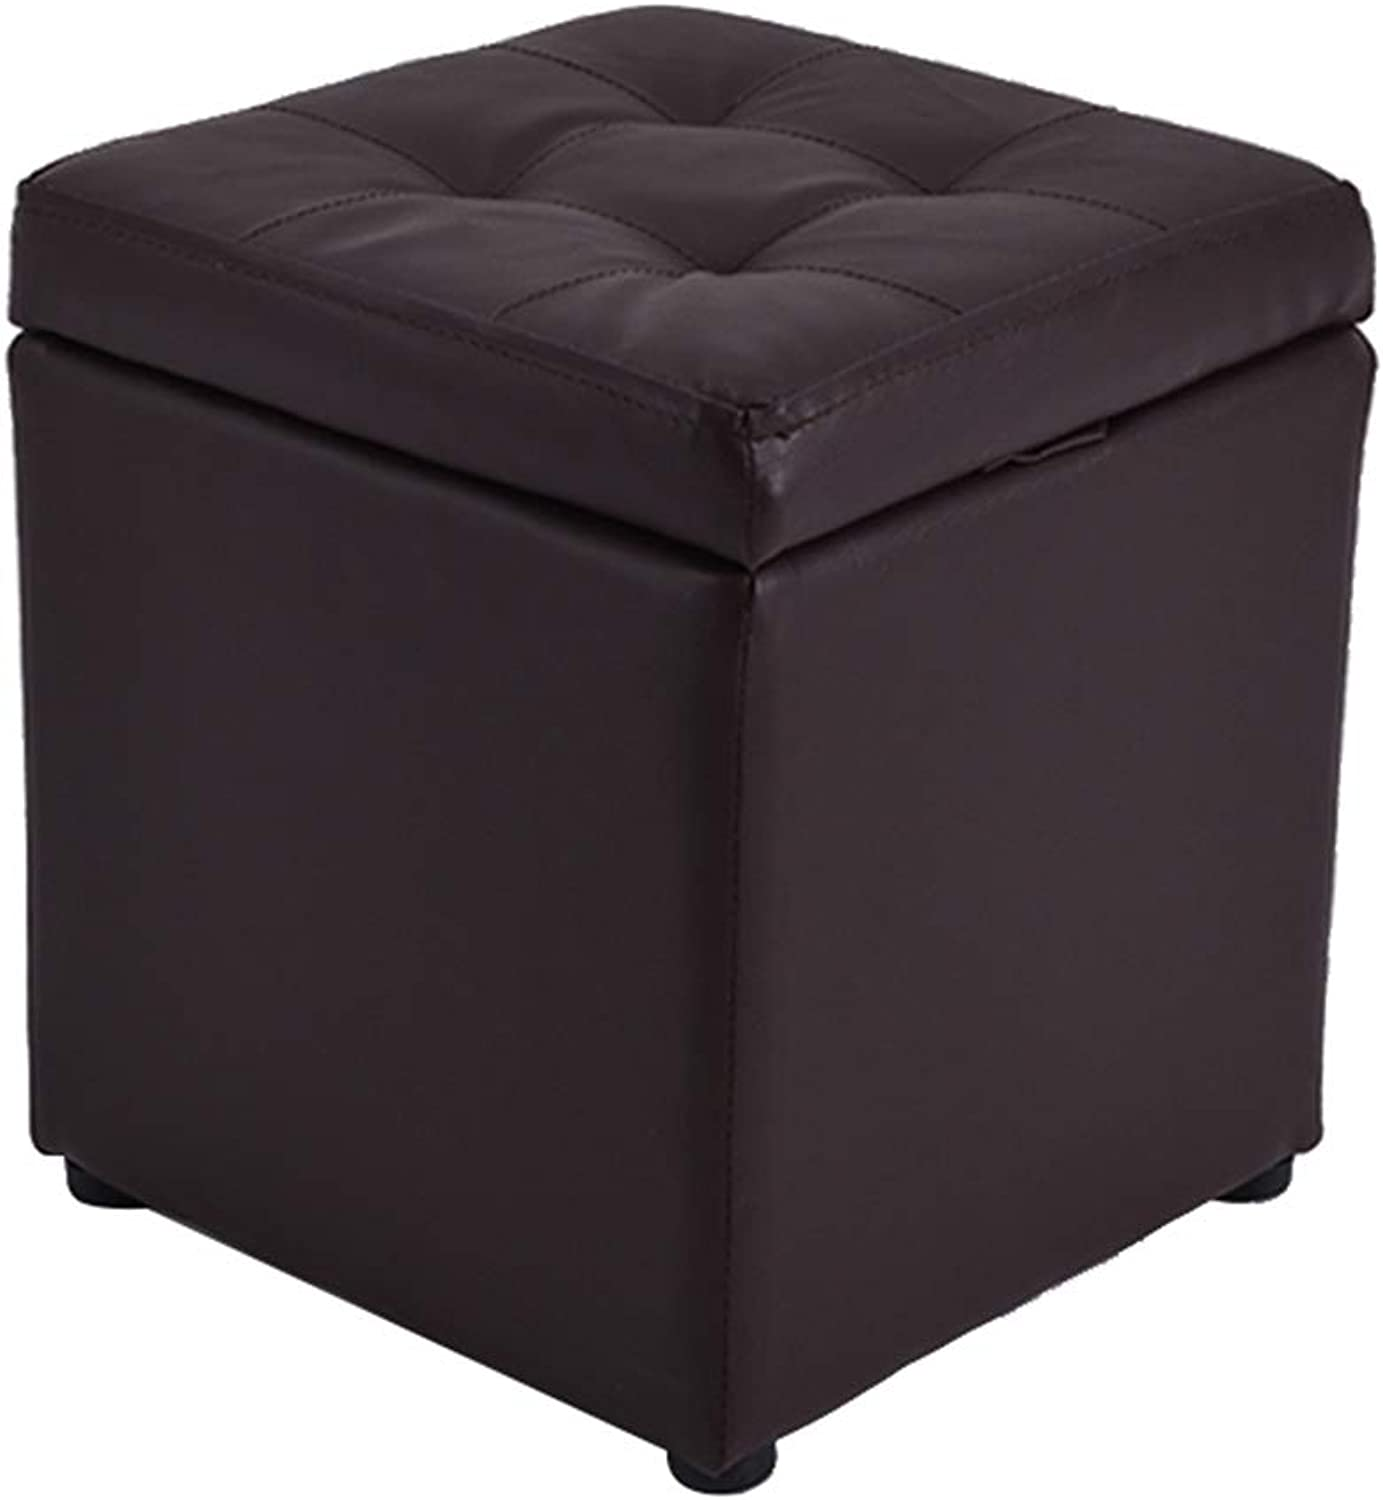 Bedroom Storage Stool, Solid Wood shoes Bench, Living Room Sofa Bench, Different Sizes,Easy to Store,Houshold Footstool,Black,M